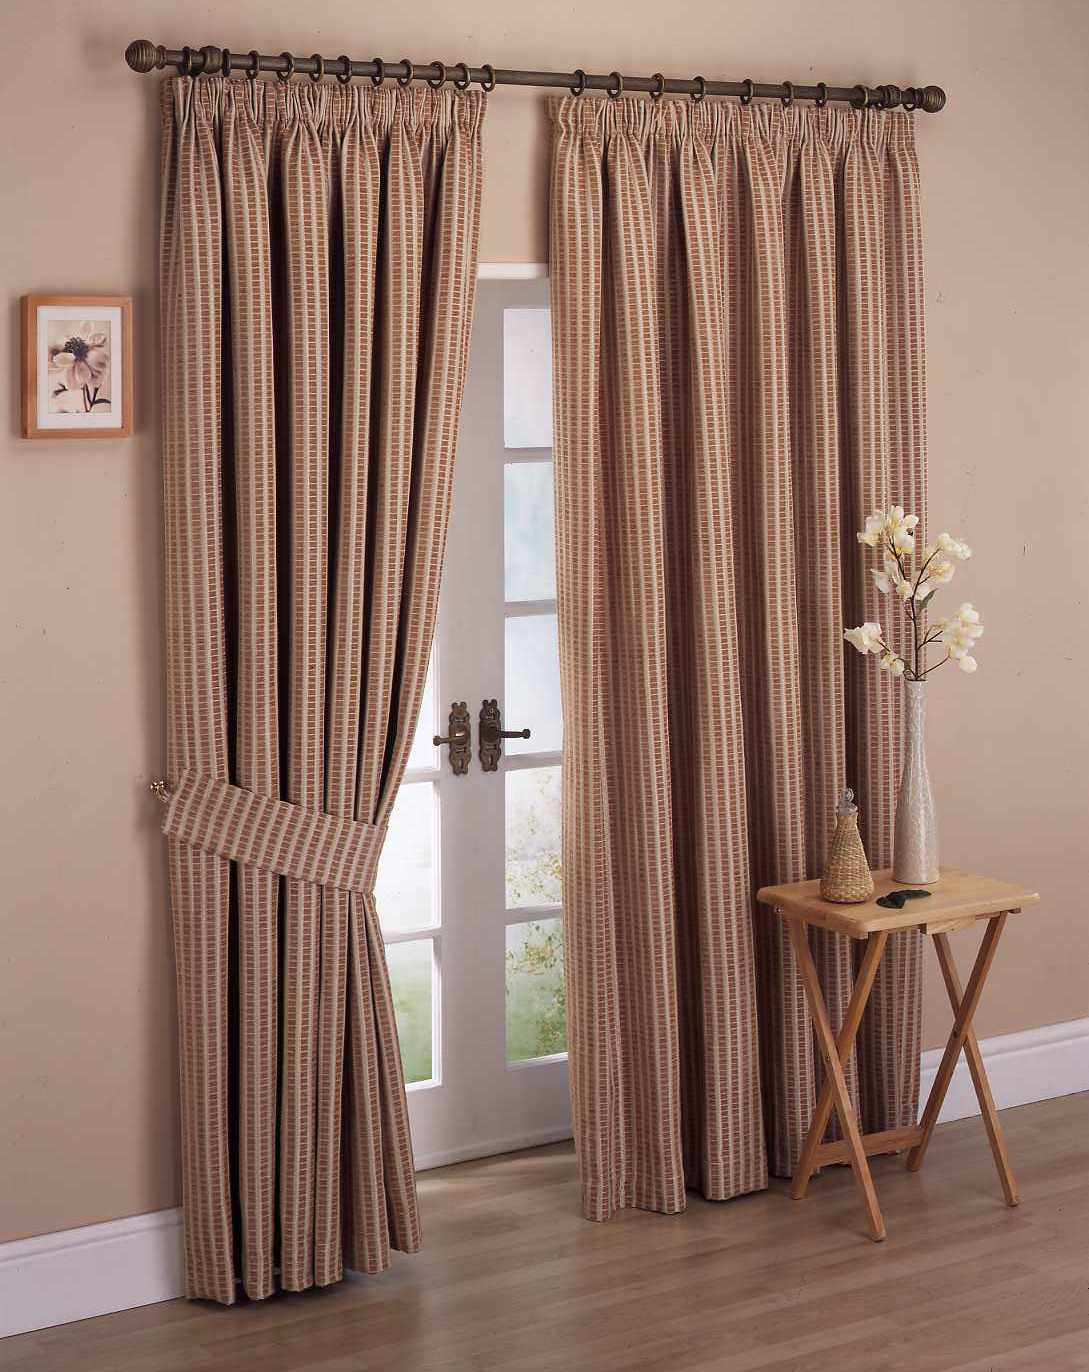 Top catalog of classic curtains designs 2013 room design ideas - Curtain photo designs ...